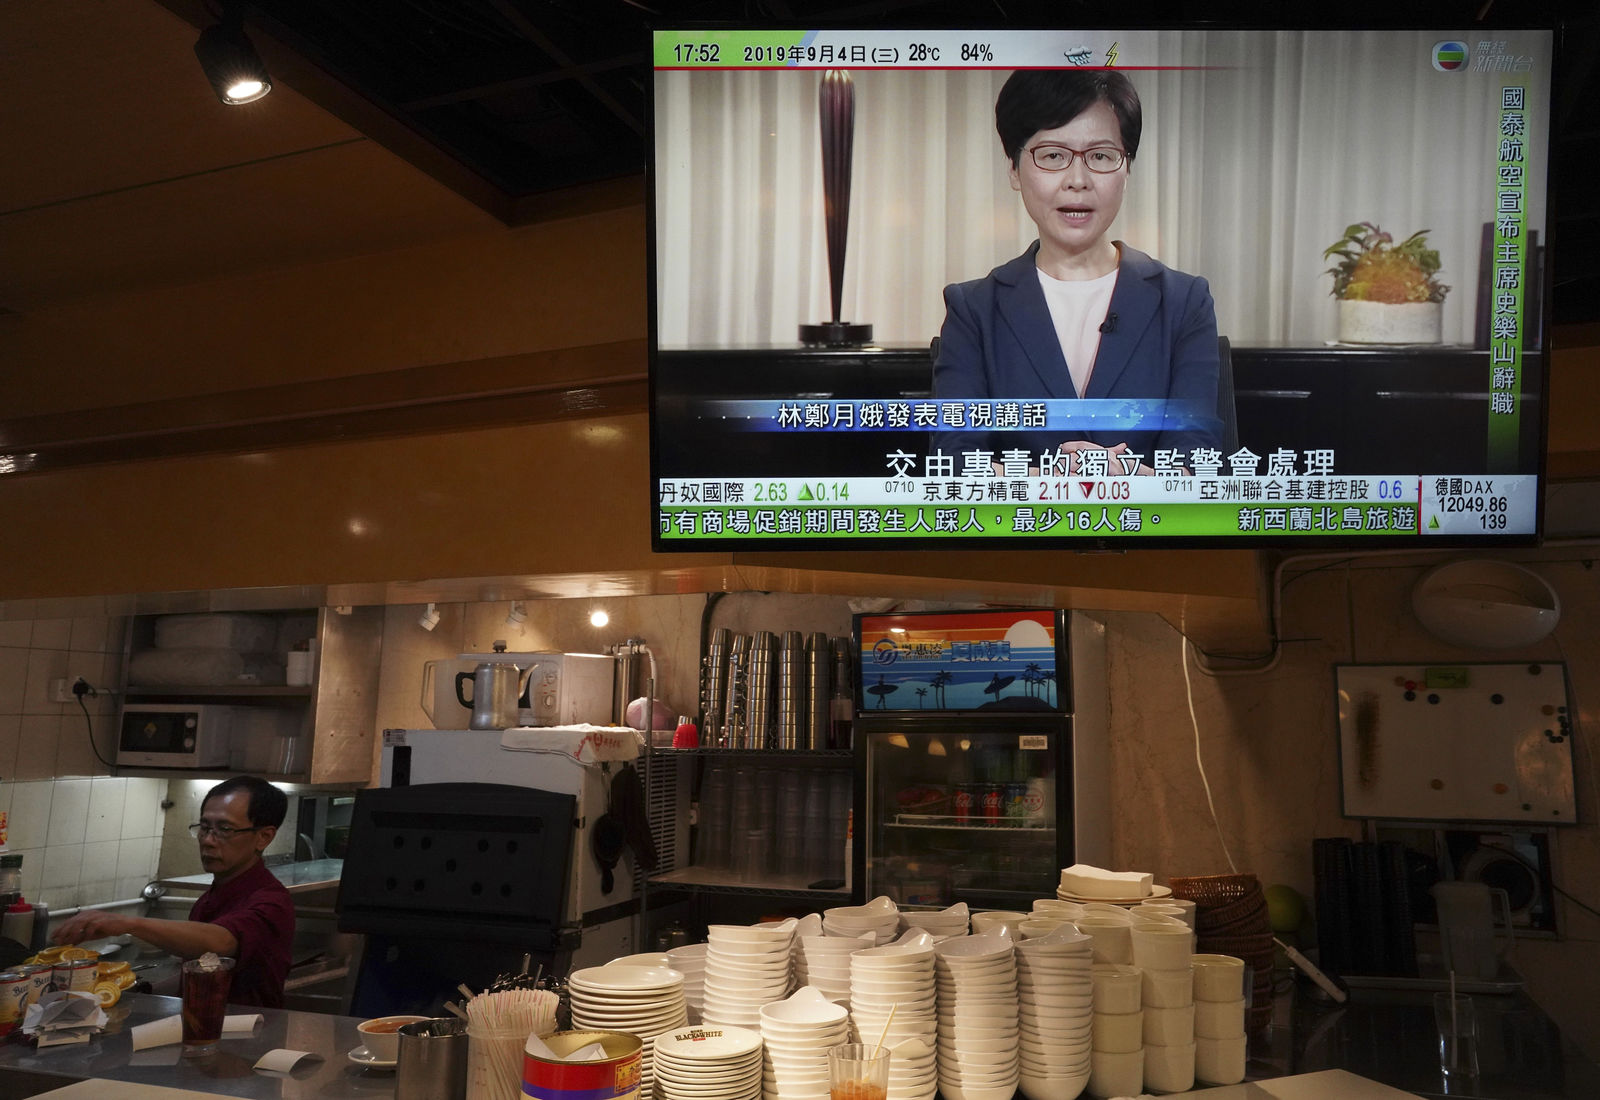 Hong Kong Chief Executive Carrie Lam, seen in a telecast, makes an announcement in Hong Kong, on Wednesday, Sept. 4, 2019. .(AP Photo/Vincent Yu)